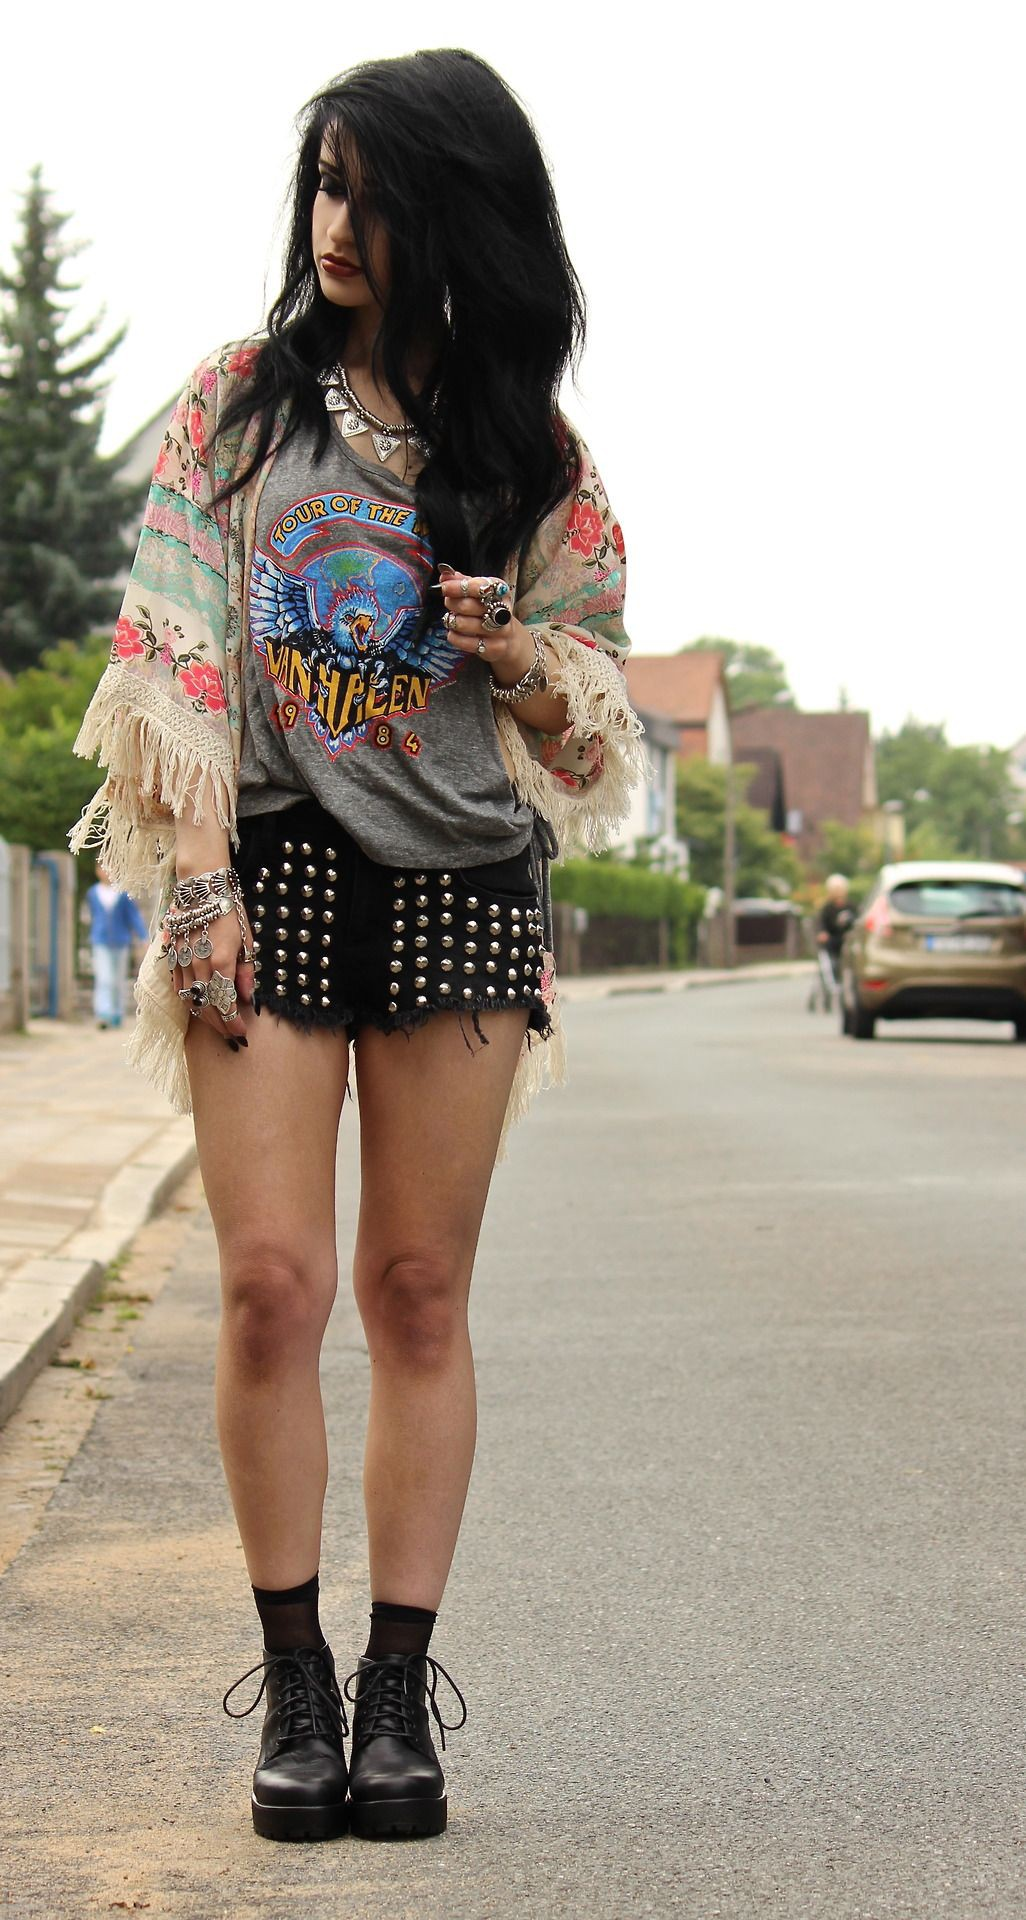 Outfit instagram with jean short, miniskirt, crop top